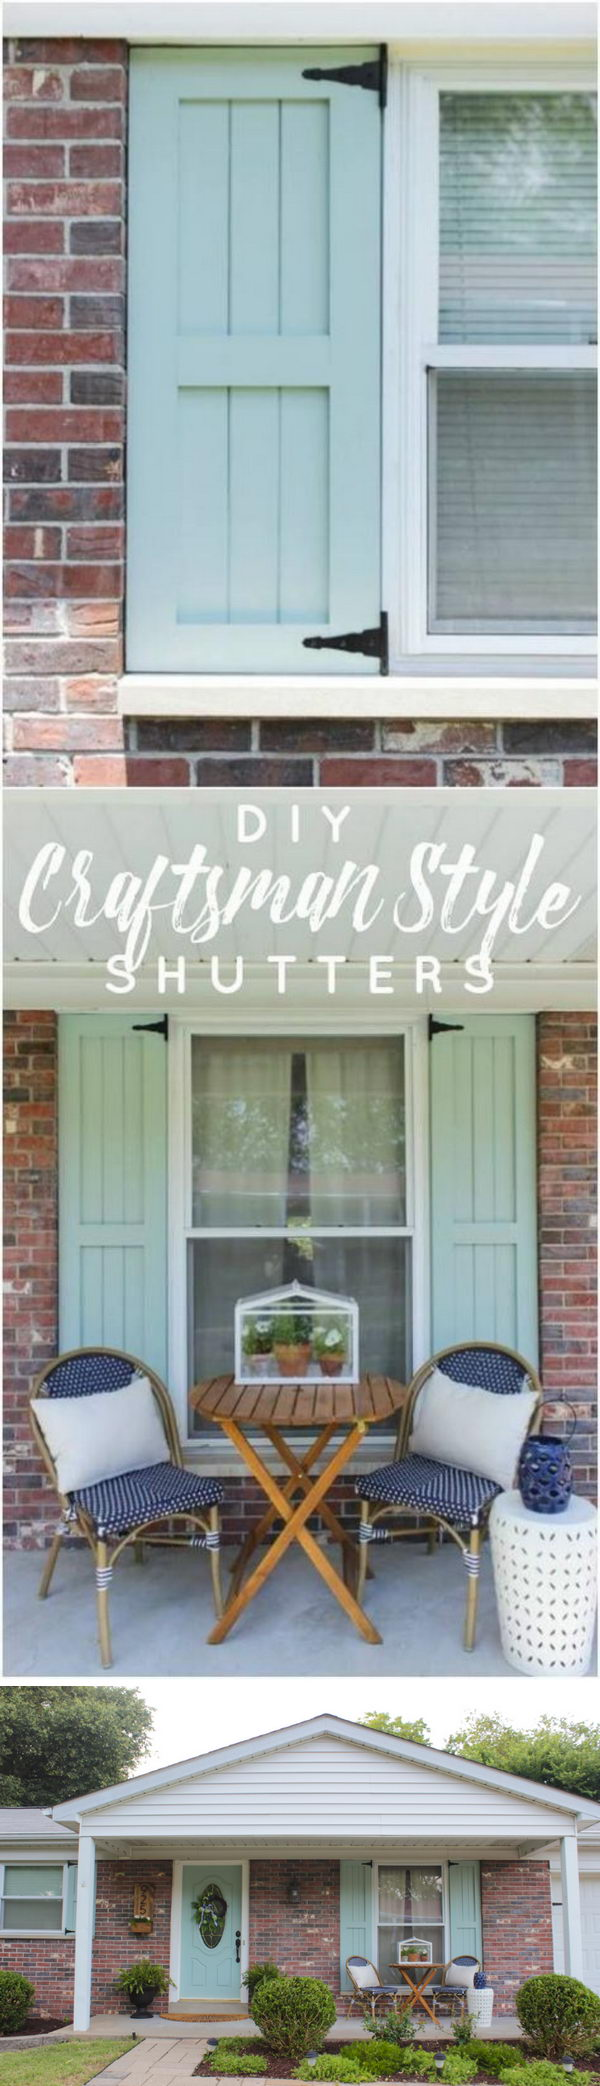 Flank a Window with Decorative Outdoor Shutters.